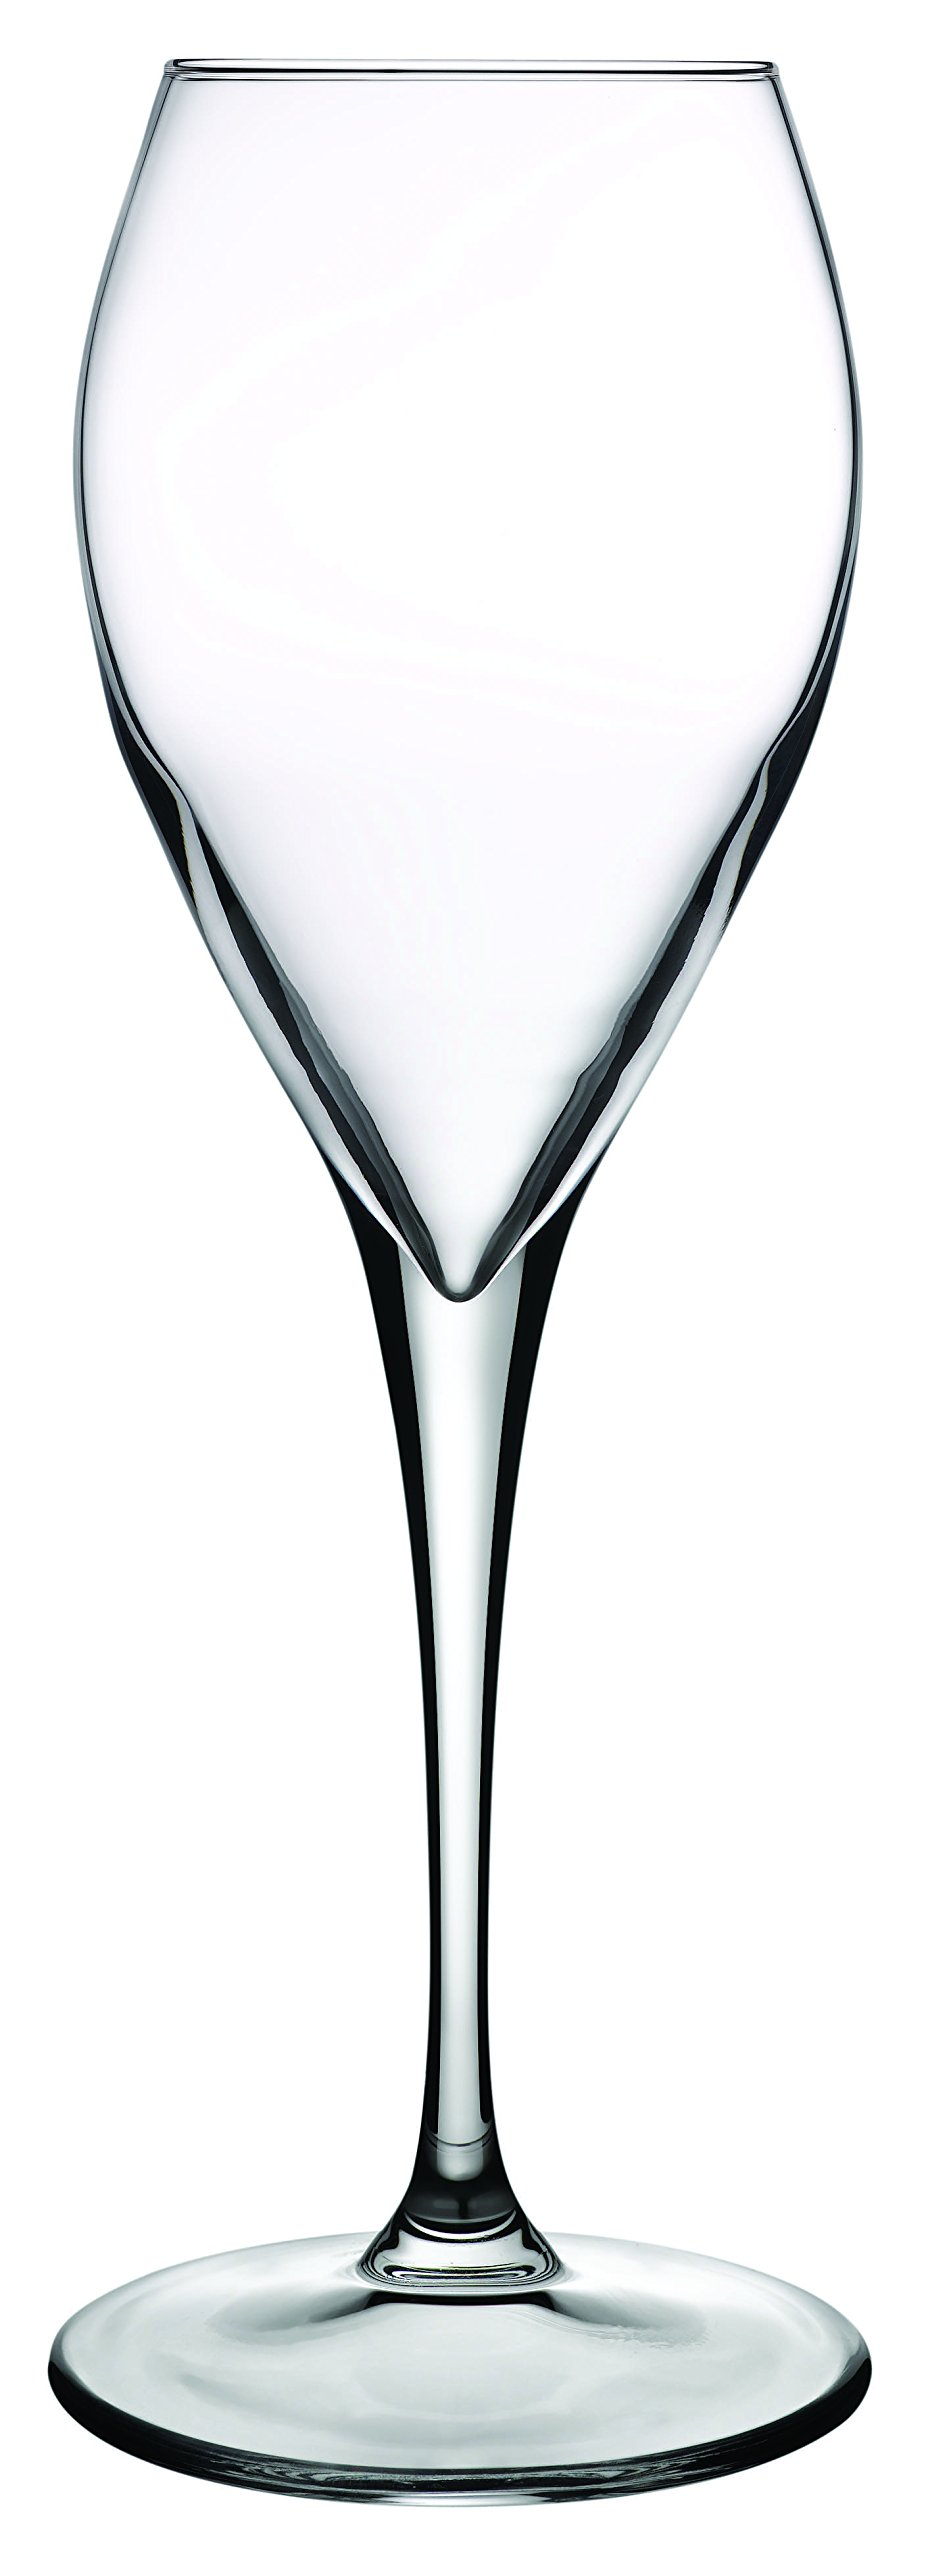 Hospitality Glass Brands 440090-024 Monte Carlo 8.75 oz. Tall Wine (Pack of 24)